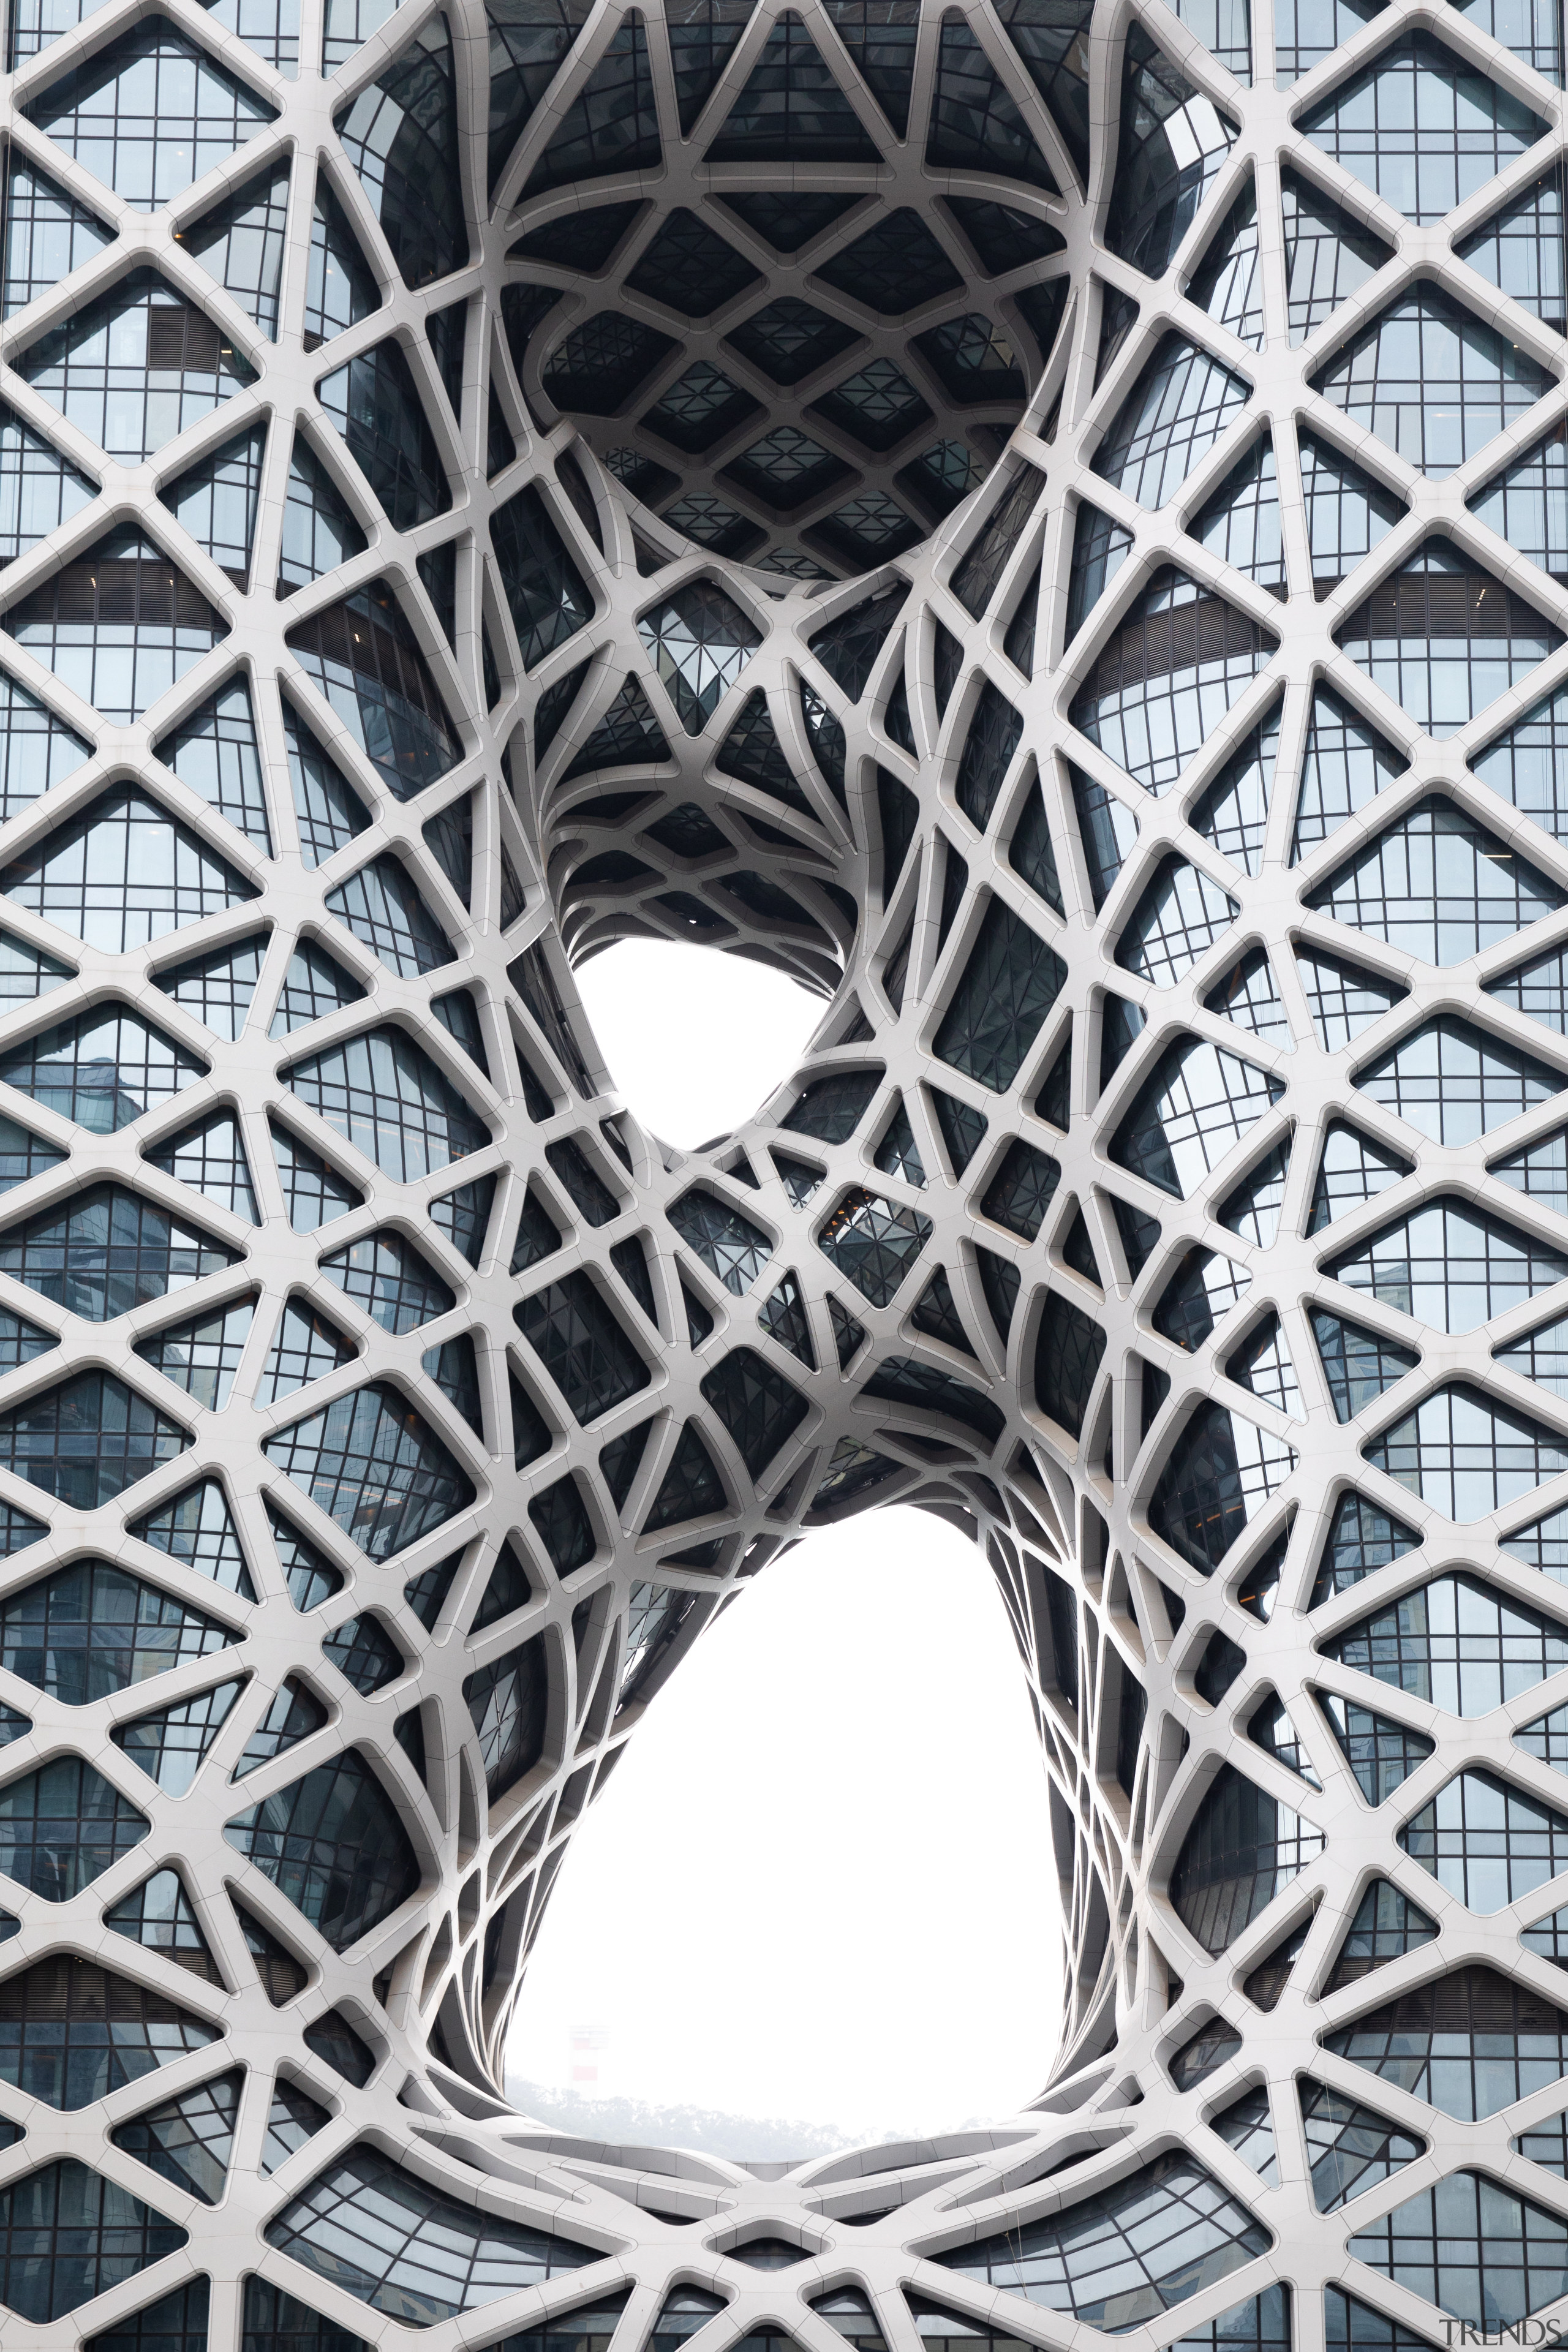 Three sculptural voids punctuate the rectangular block shape architecture, building, line, pattern, structure, symmetry, white, black